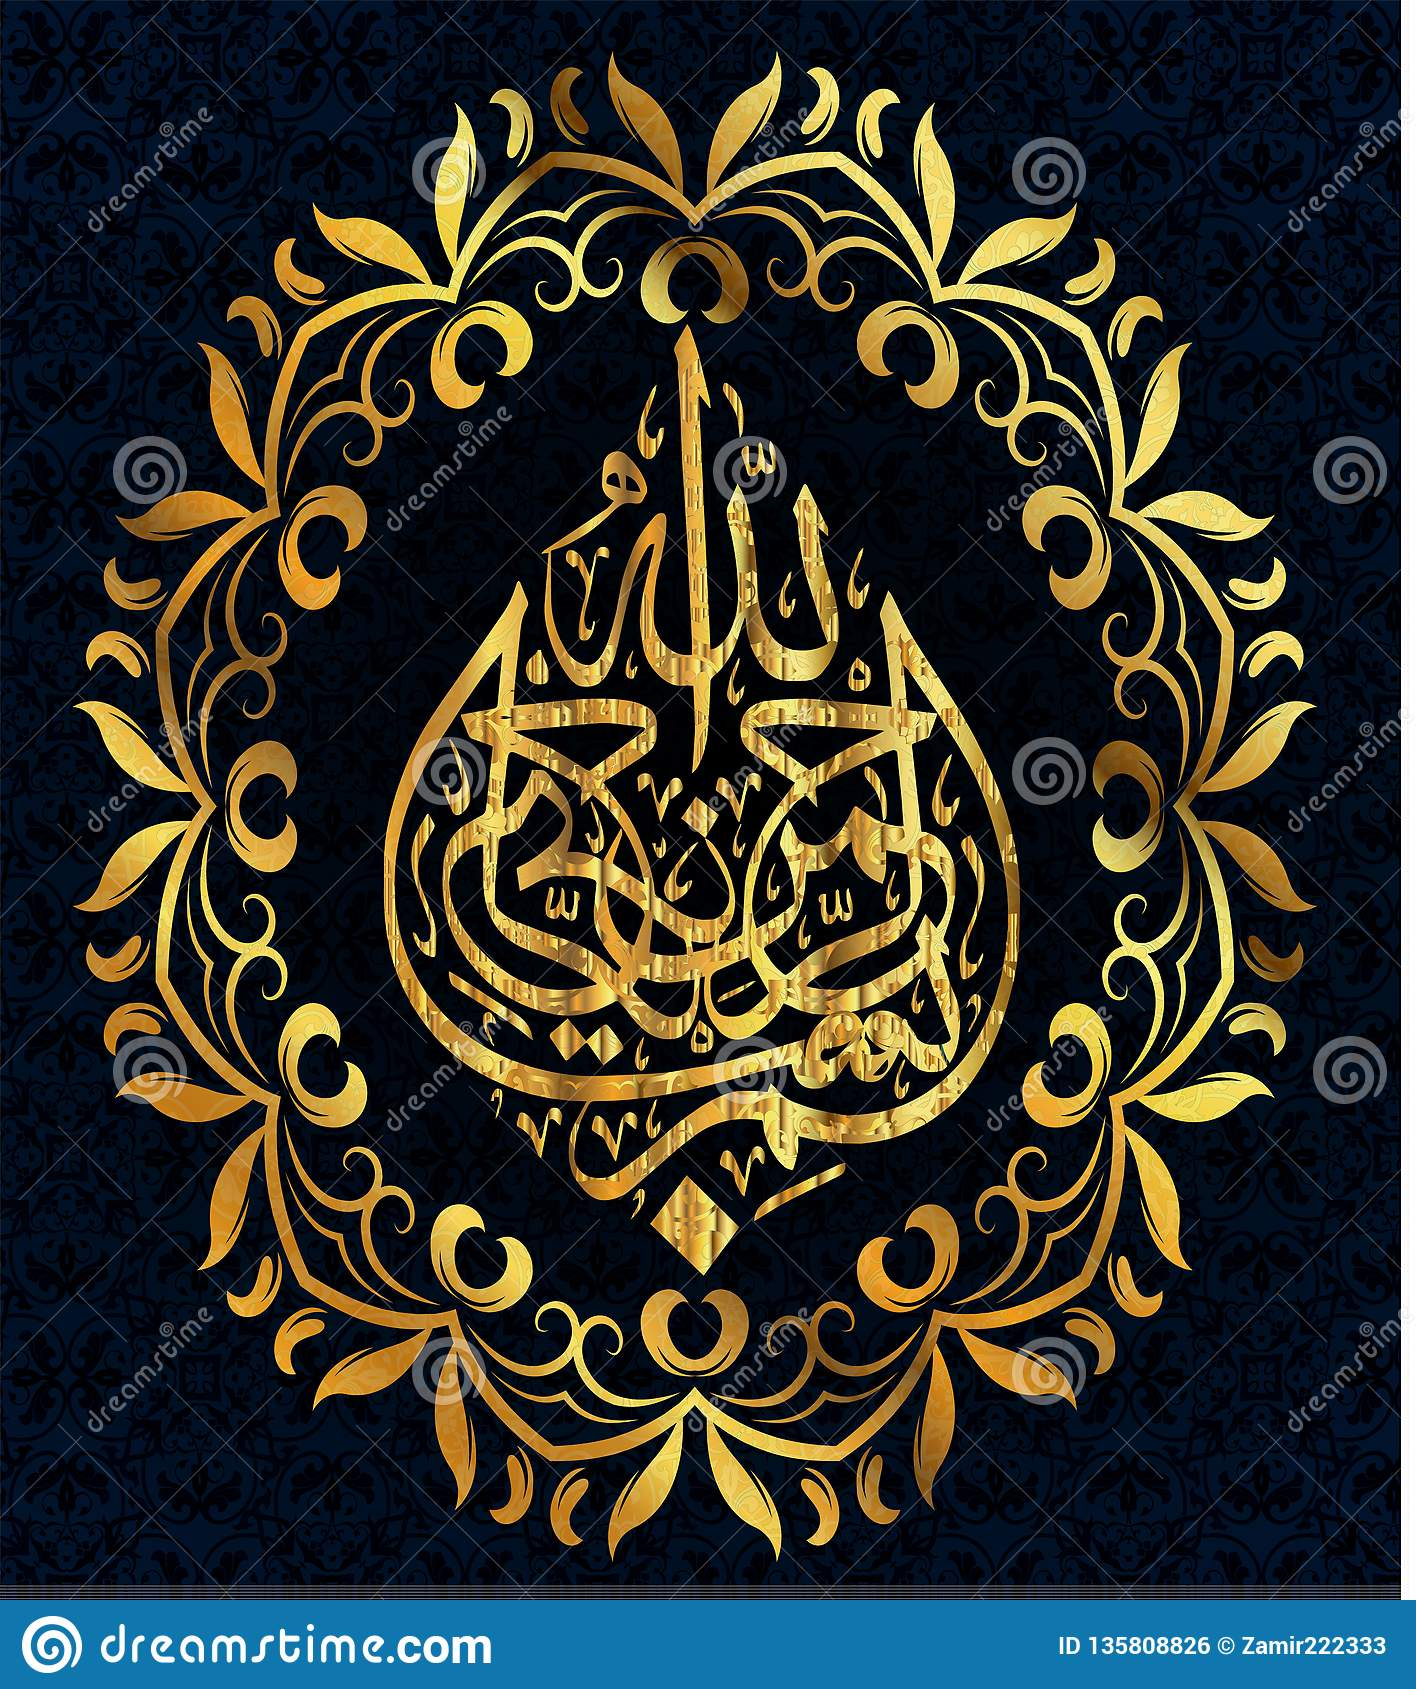 Arabic Calligraphy For BismiLahi Rahmani Rahim, For The